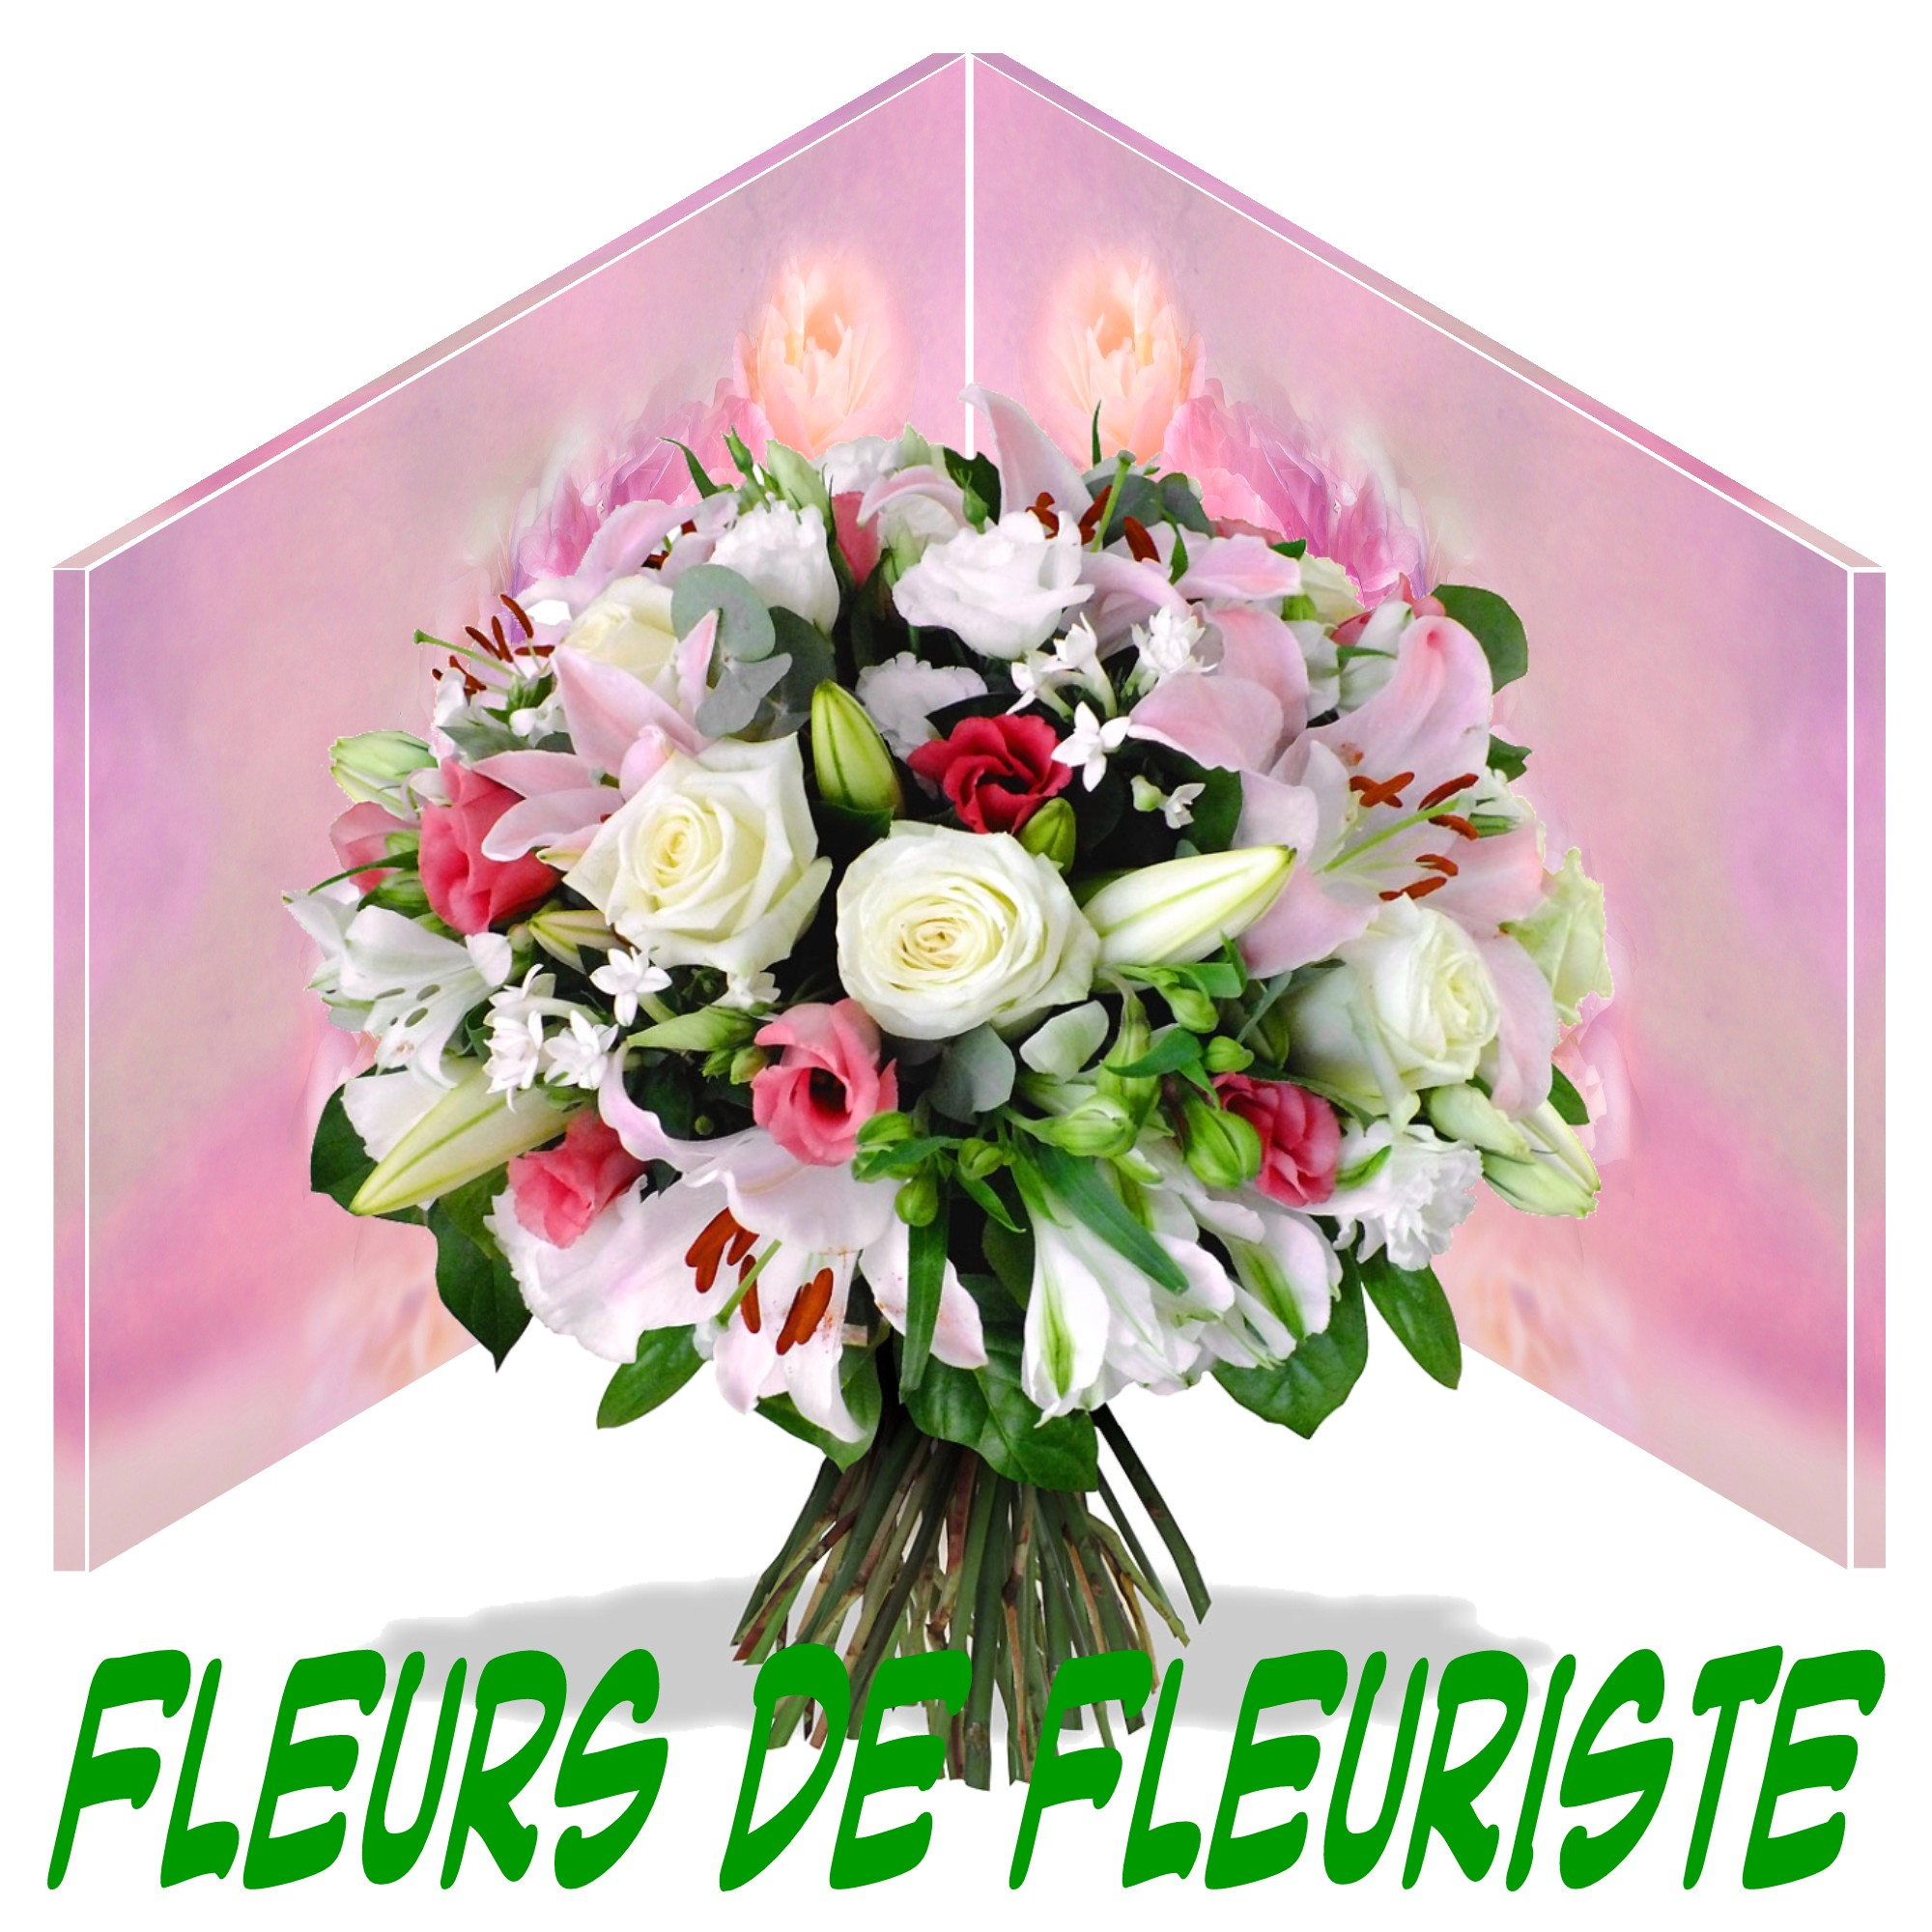 FLEURS PAR COLLECTION